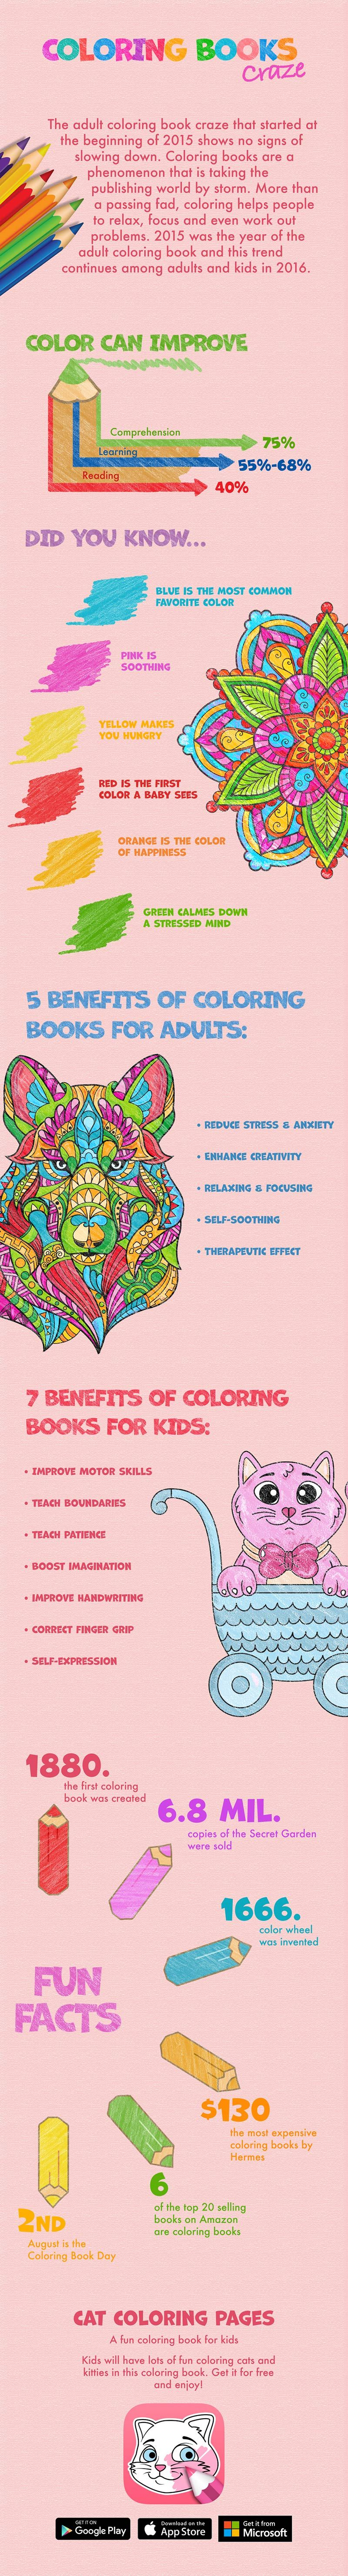 Colouring for adults benefits - Coloring Books Infographic Benefits And Advantages Of Coloring Books For Kids And Adults